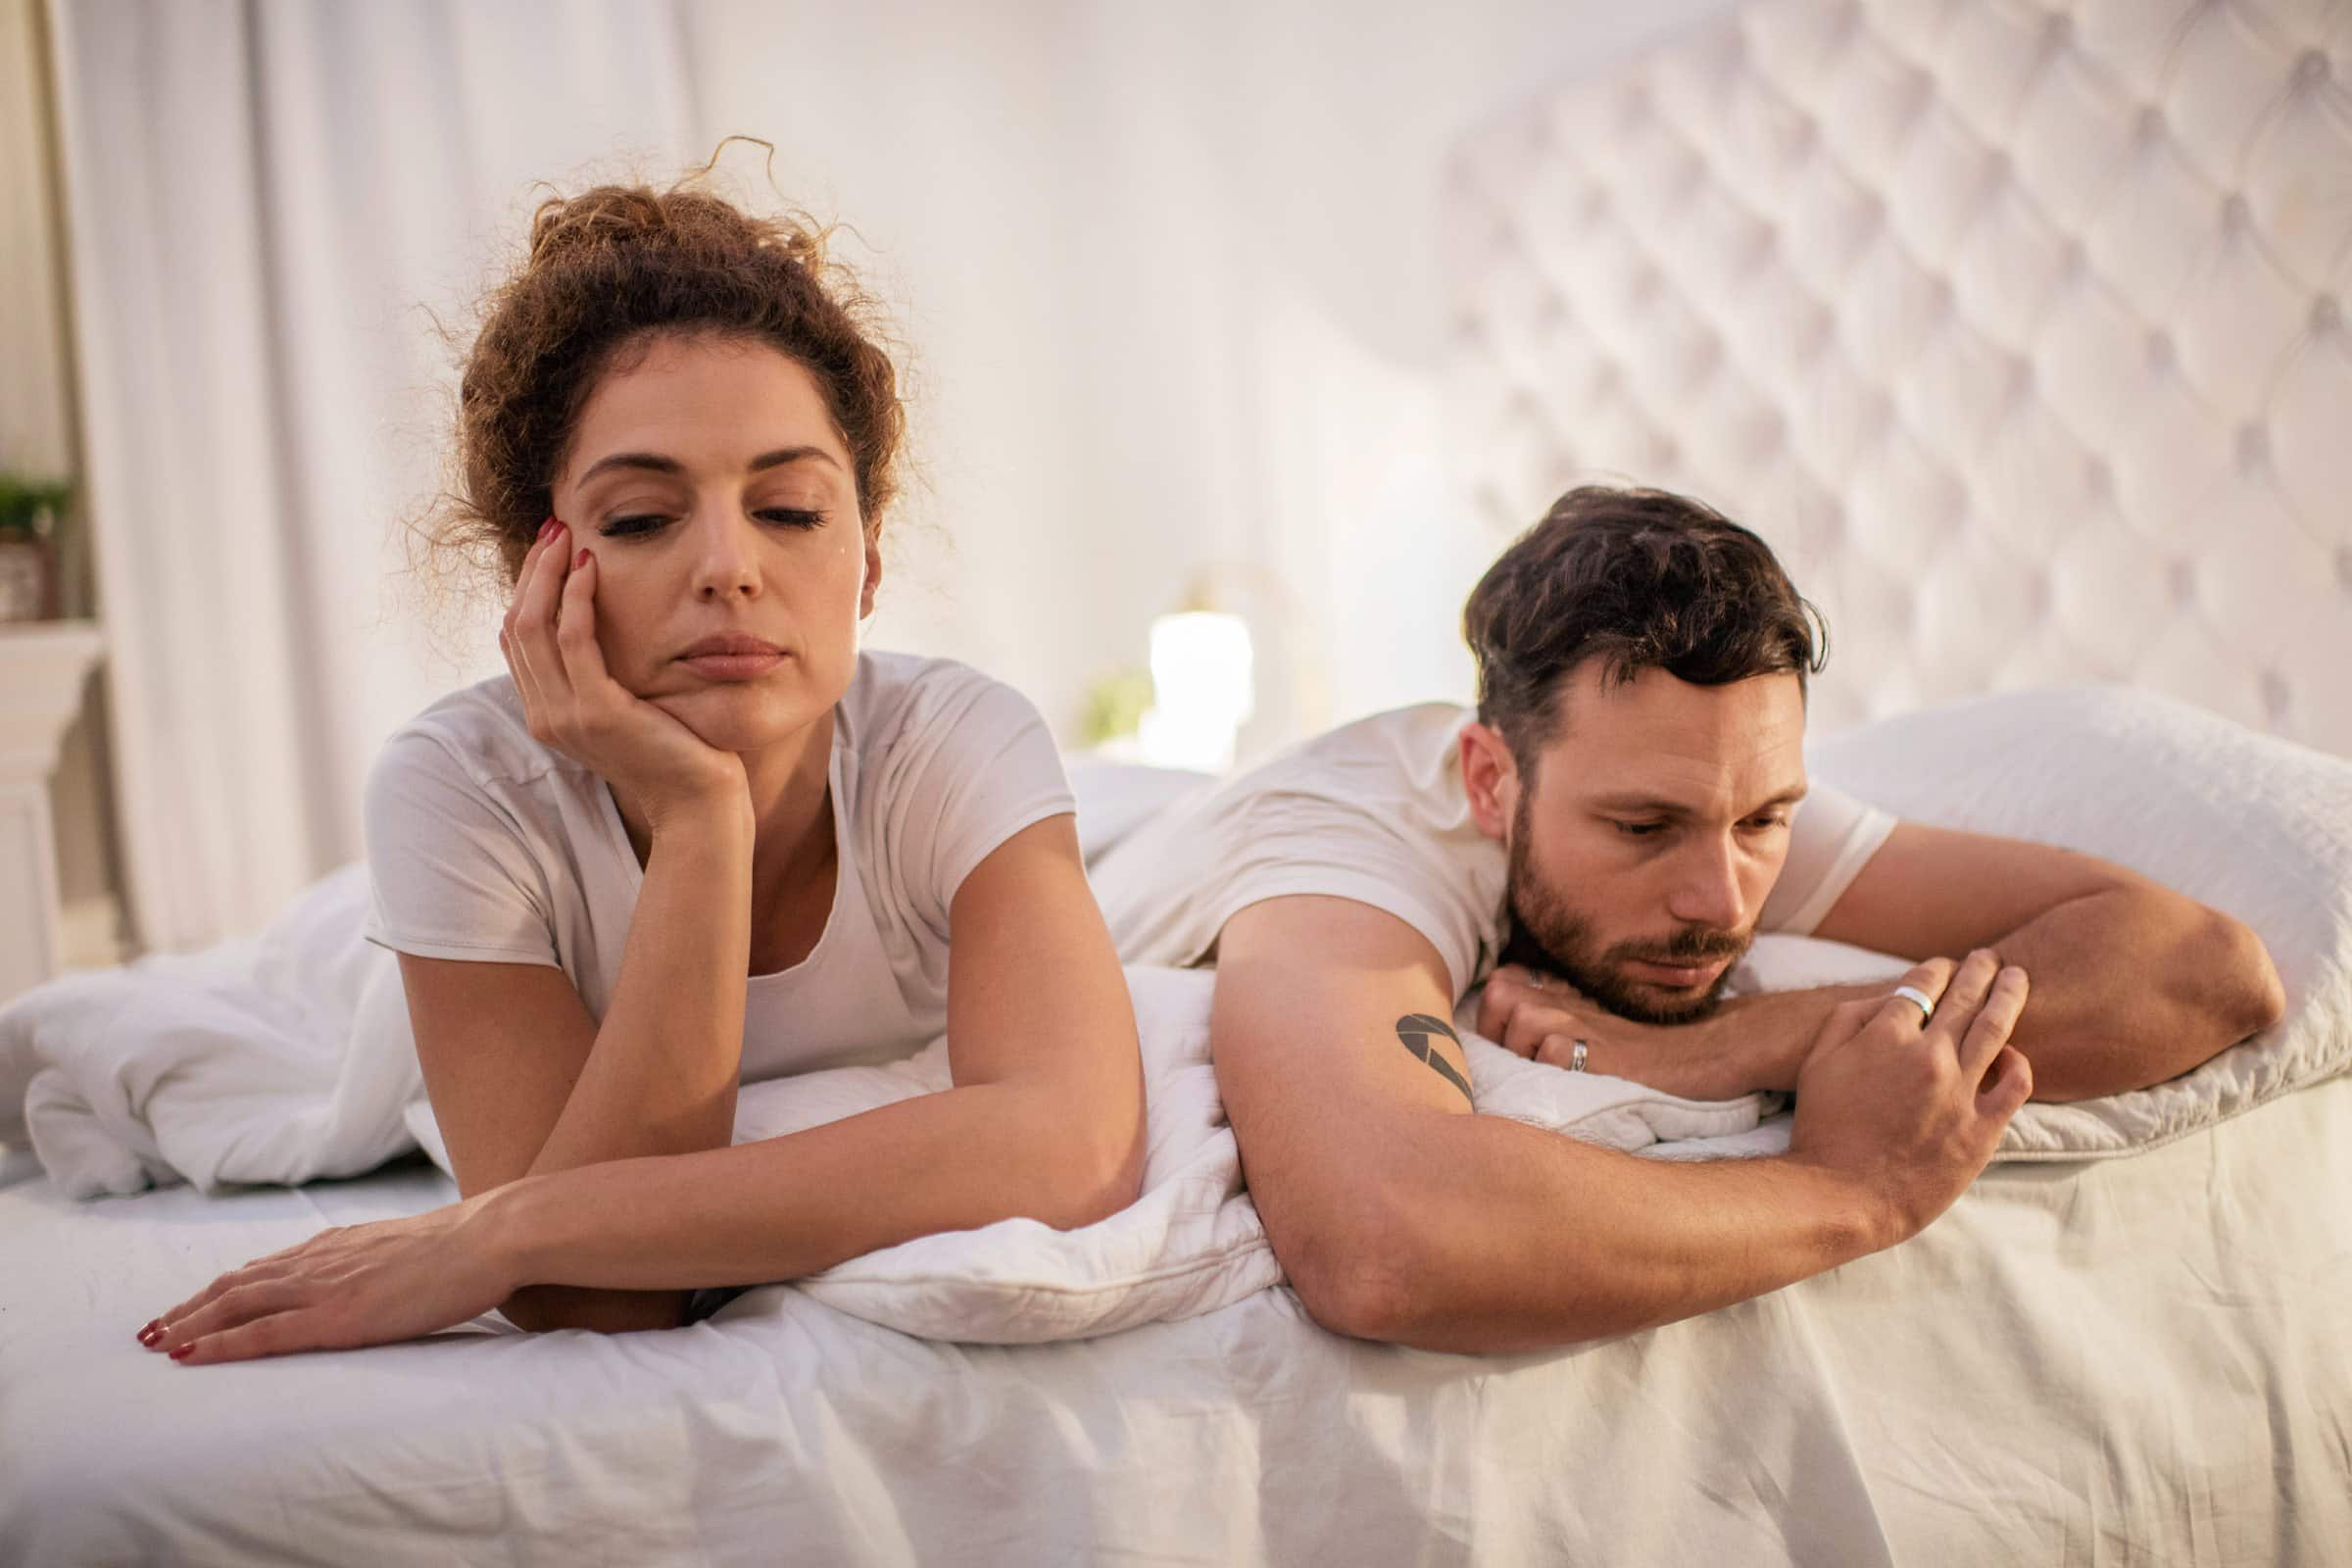 Men Lose Passion For Sex Before Women Do in Long-Term Relationships, Says New Study